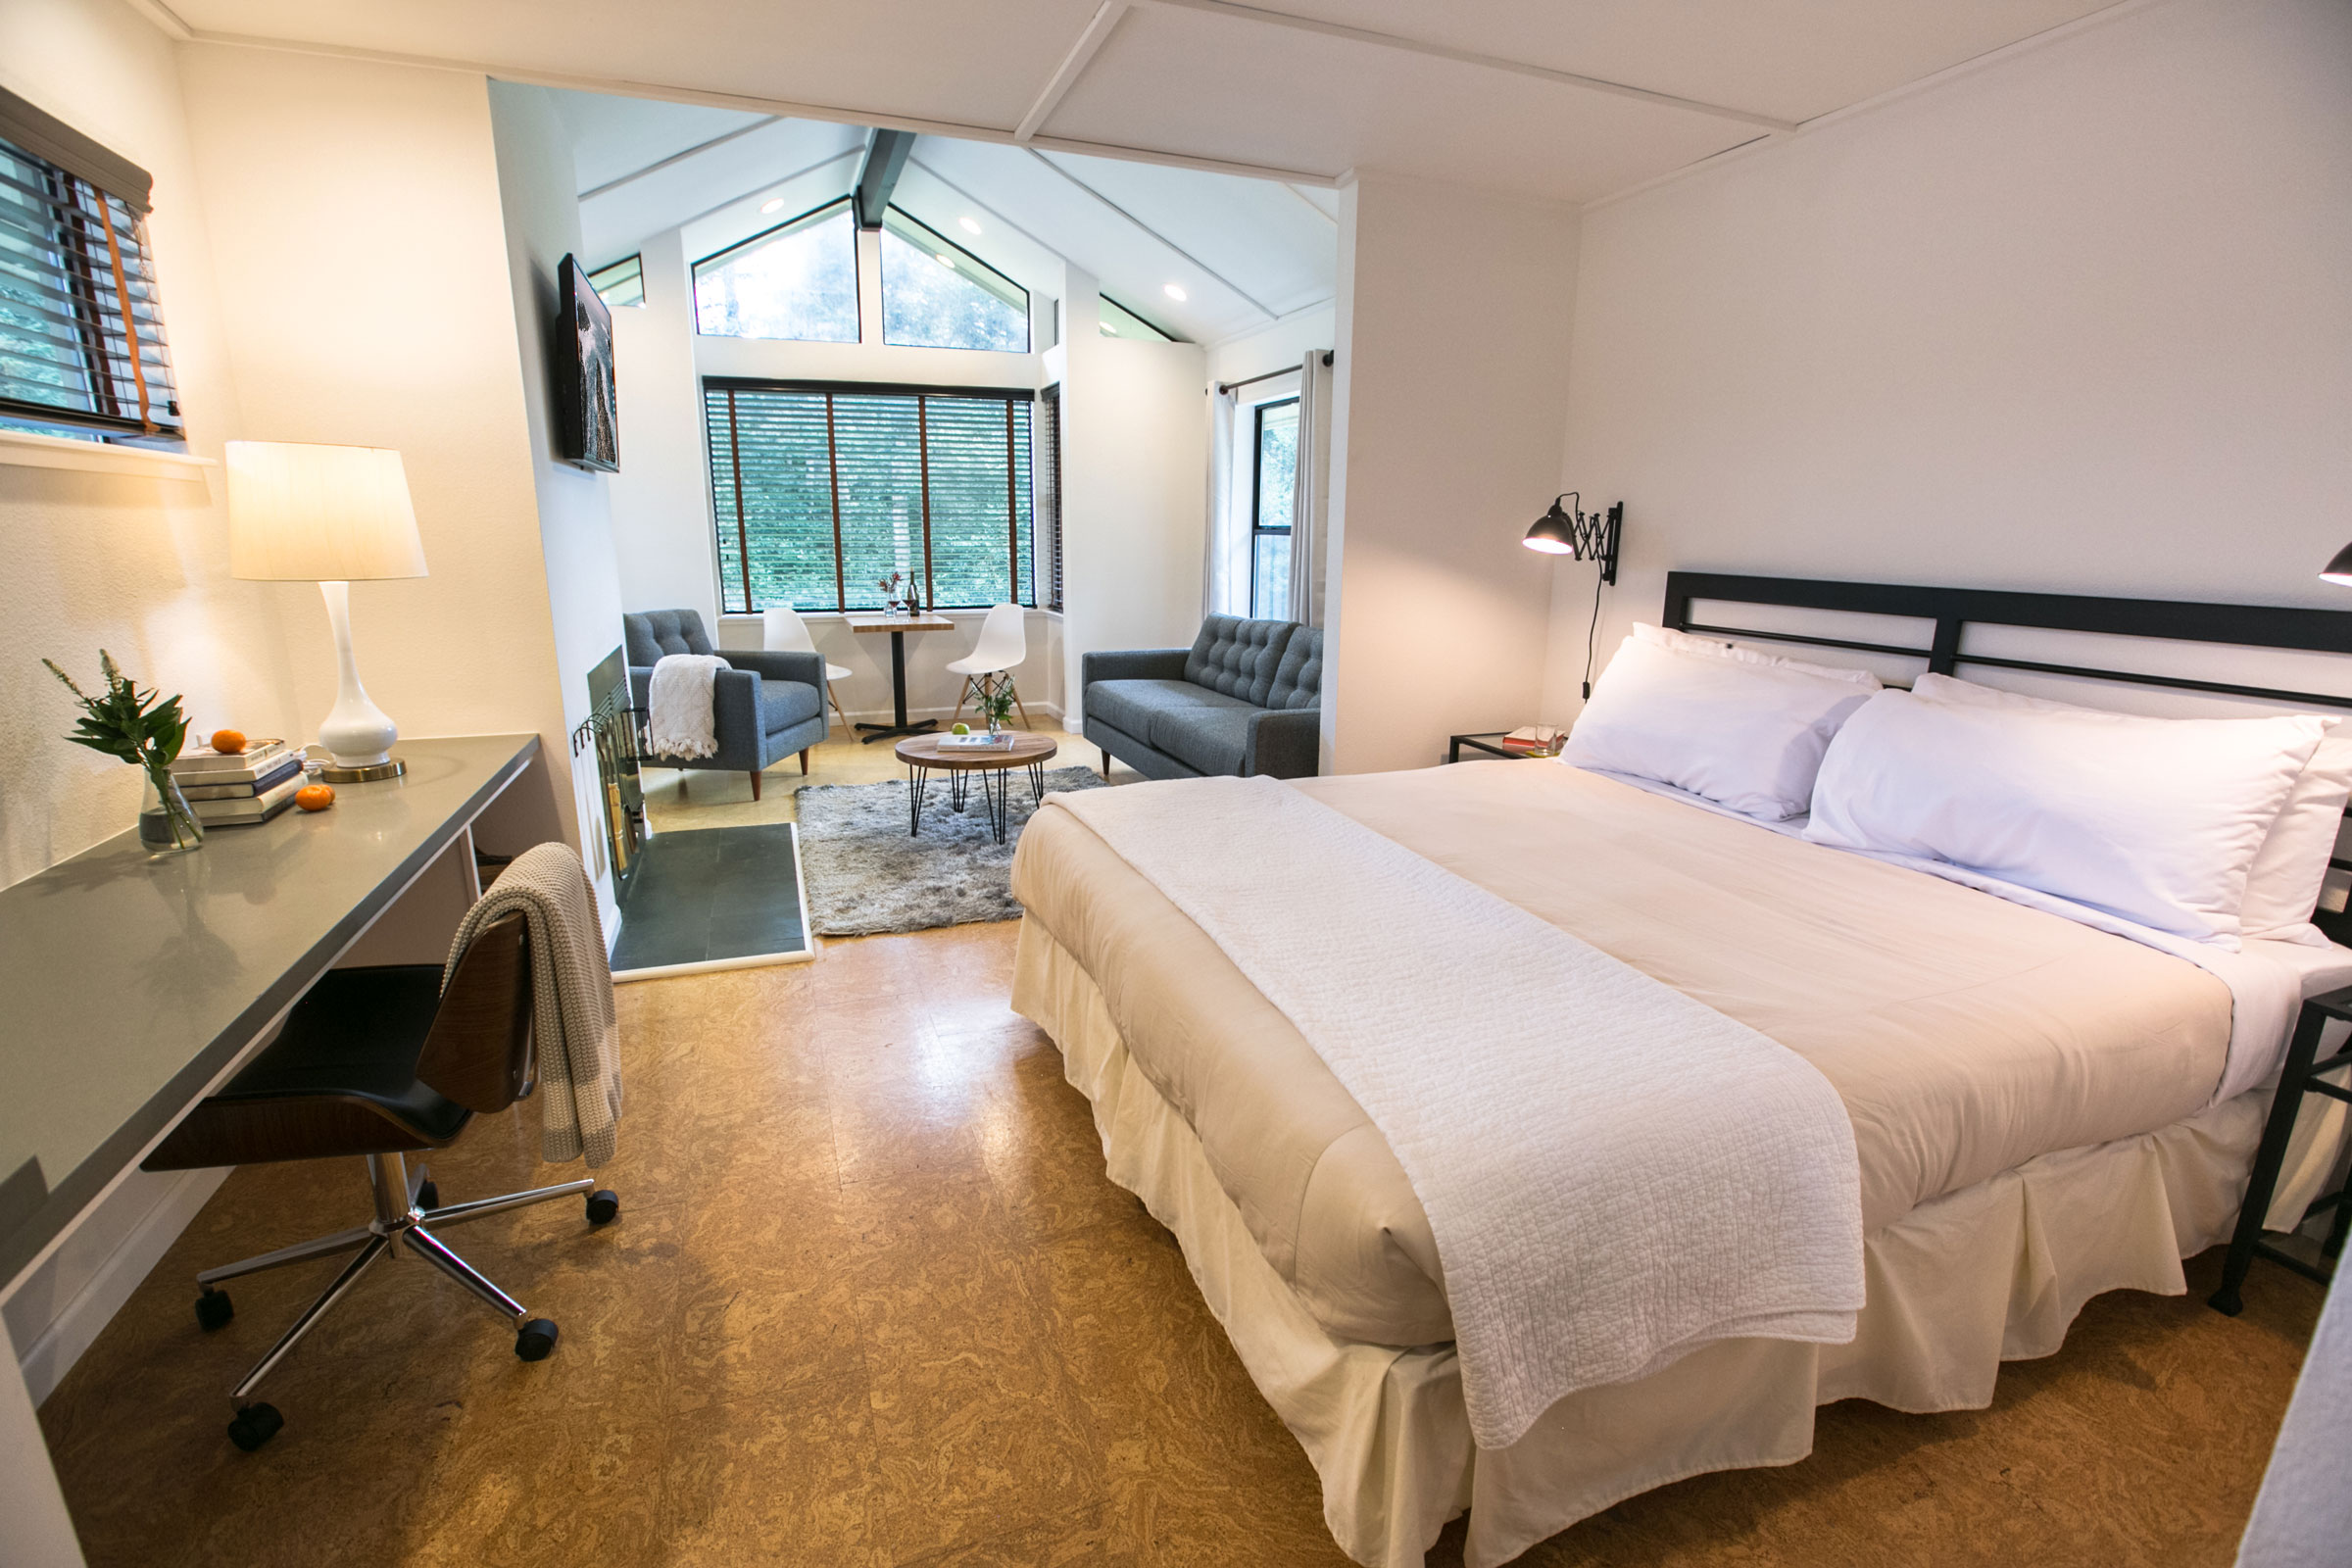 The spacious queen bed in room 203 at the Lodge at Glendeven outside Mendocino, as well as sitting area and work station.